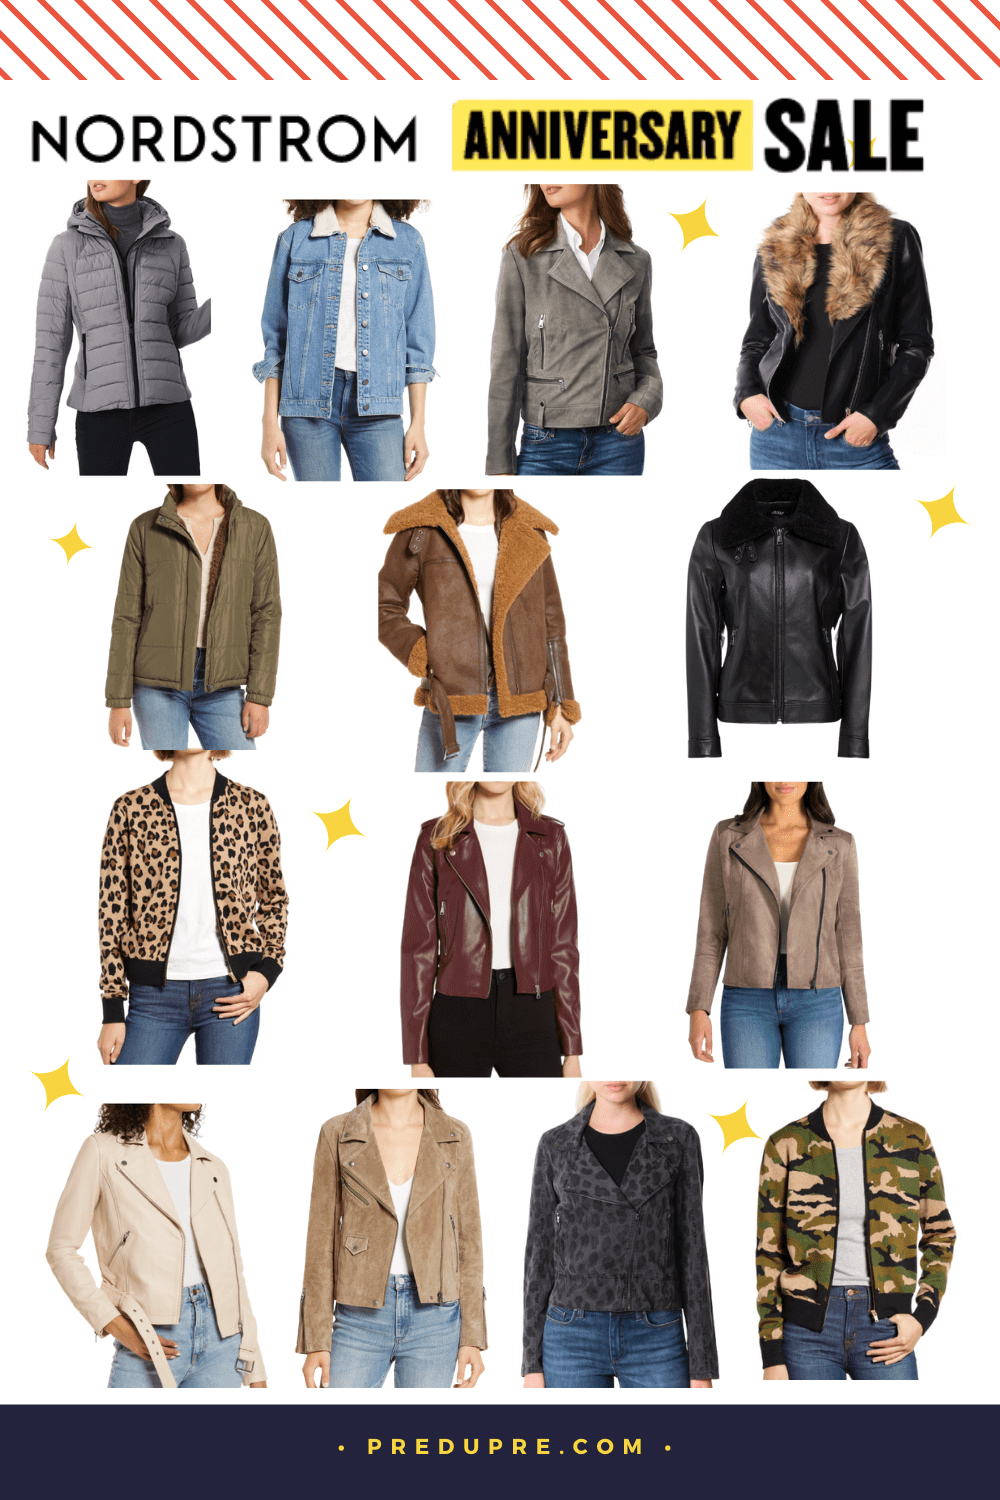 fall/winter fashion trends 2020, winter coat trends 2020, winter coats 2020, best winter coats women's, best winter coats women's 2020, top winter coats, warm fashionable winter coats, jacket trends 2020, jacket styles for ladies, best fall jackets women's 2020, coats fall 2020, womens fashion jackets, women's casual jackets, women's jackets, cute jackets for women, autumn jacket women's, best fall jackets women's, cute jackets 2020, fall utility jackets, women's coatjackets in style 2020, women's winter coats on sale, long winter coats women's, women's knee length winter coats